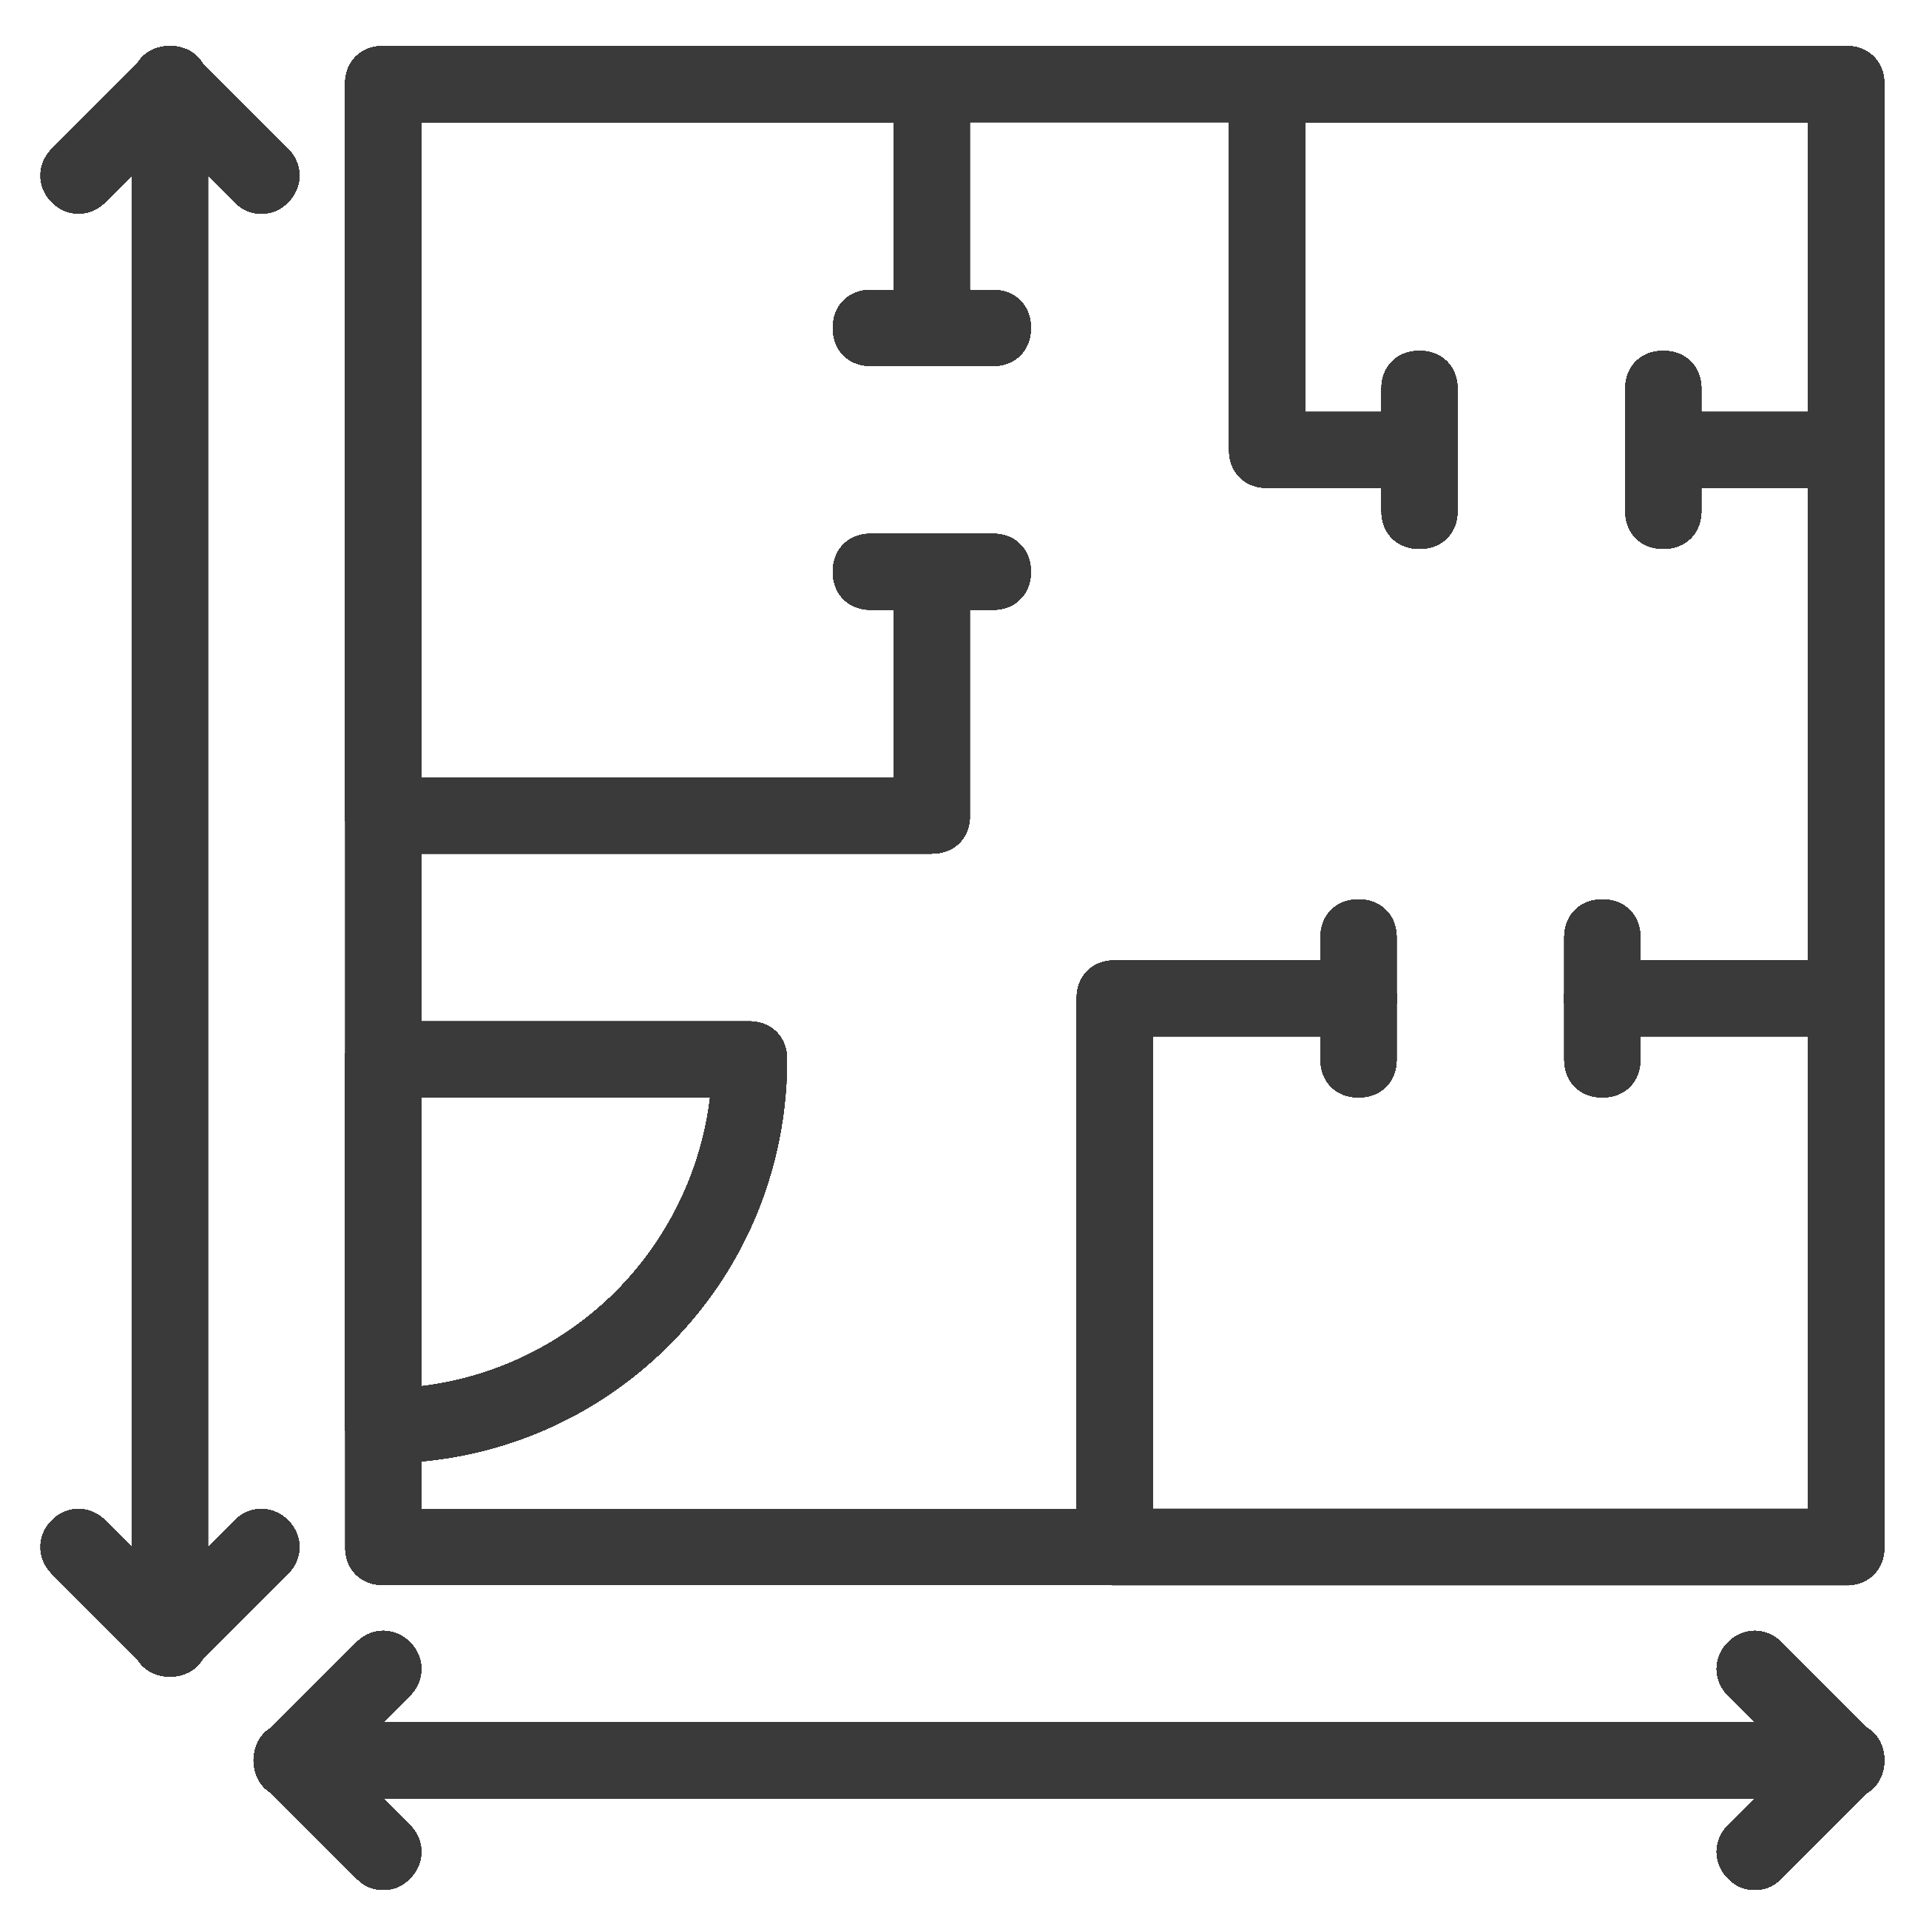 blueprint with square feet measurements icon